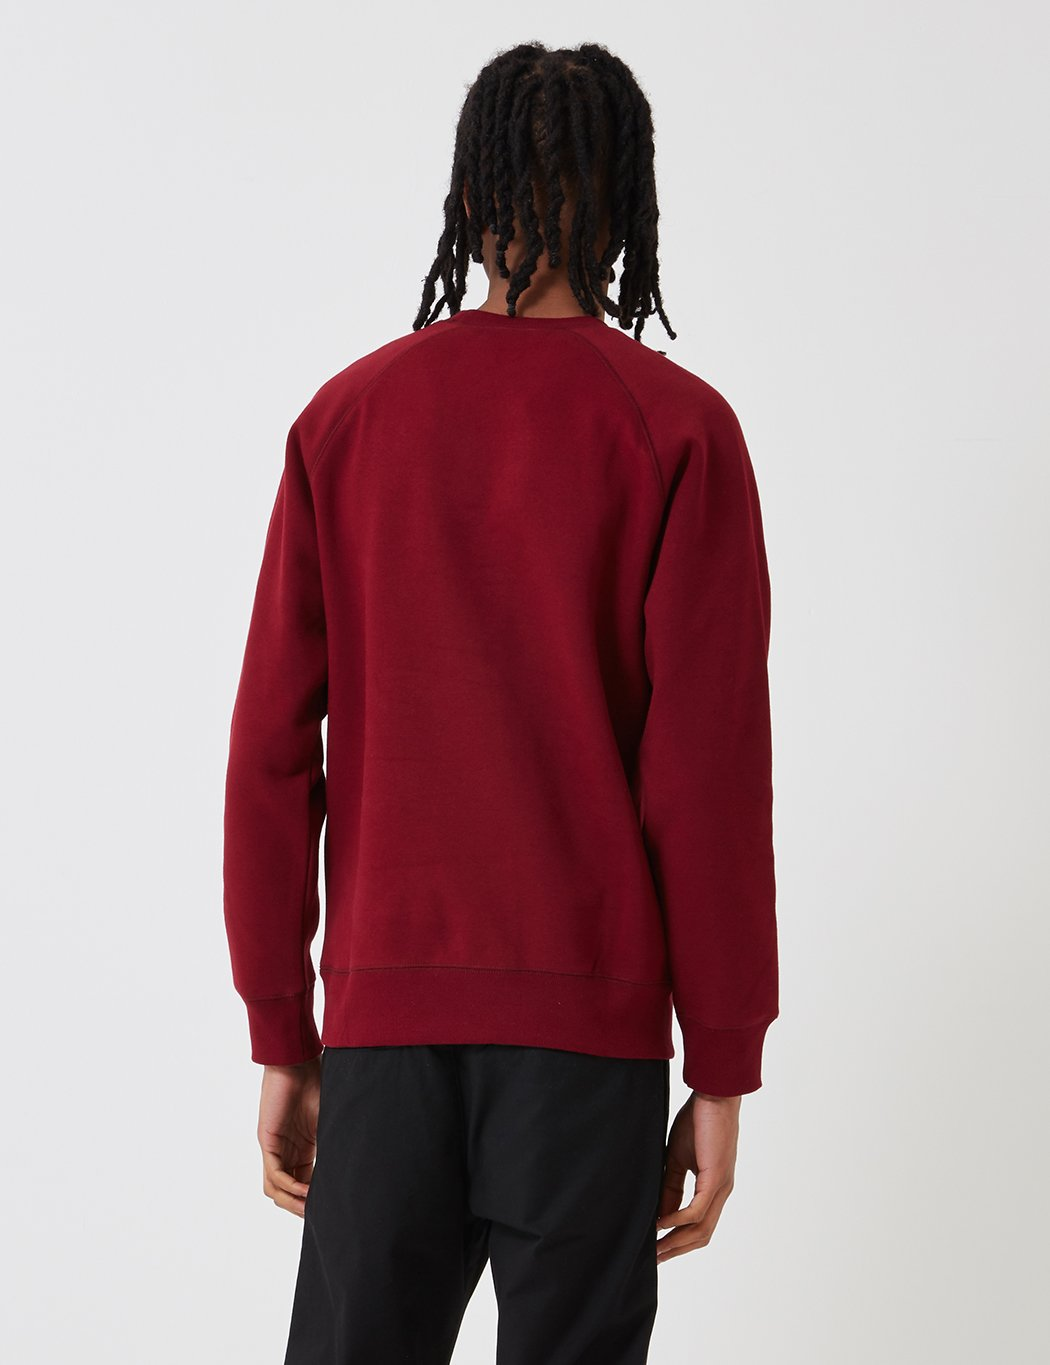 Carhartt-WIP Chase Sweatshirt - Cranberry Red